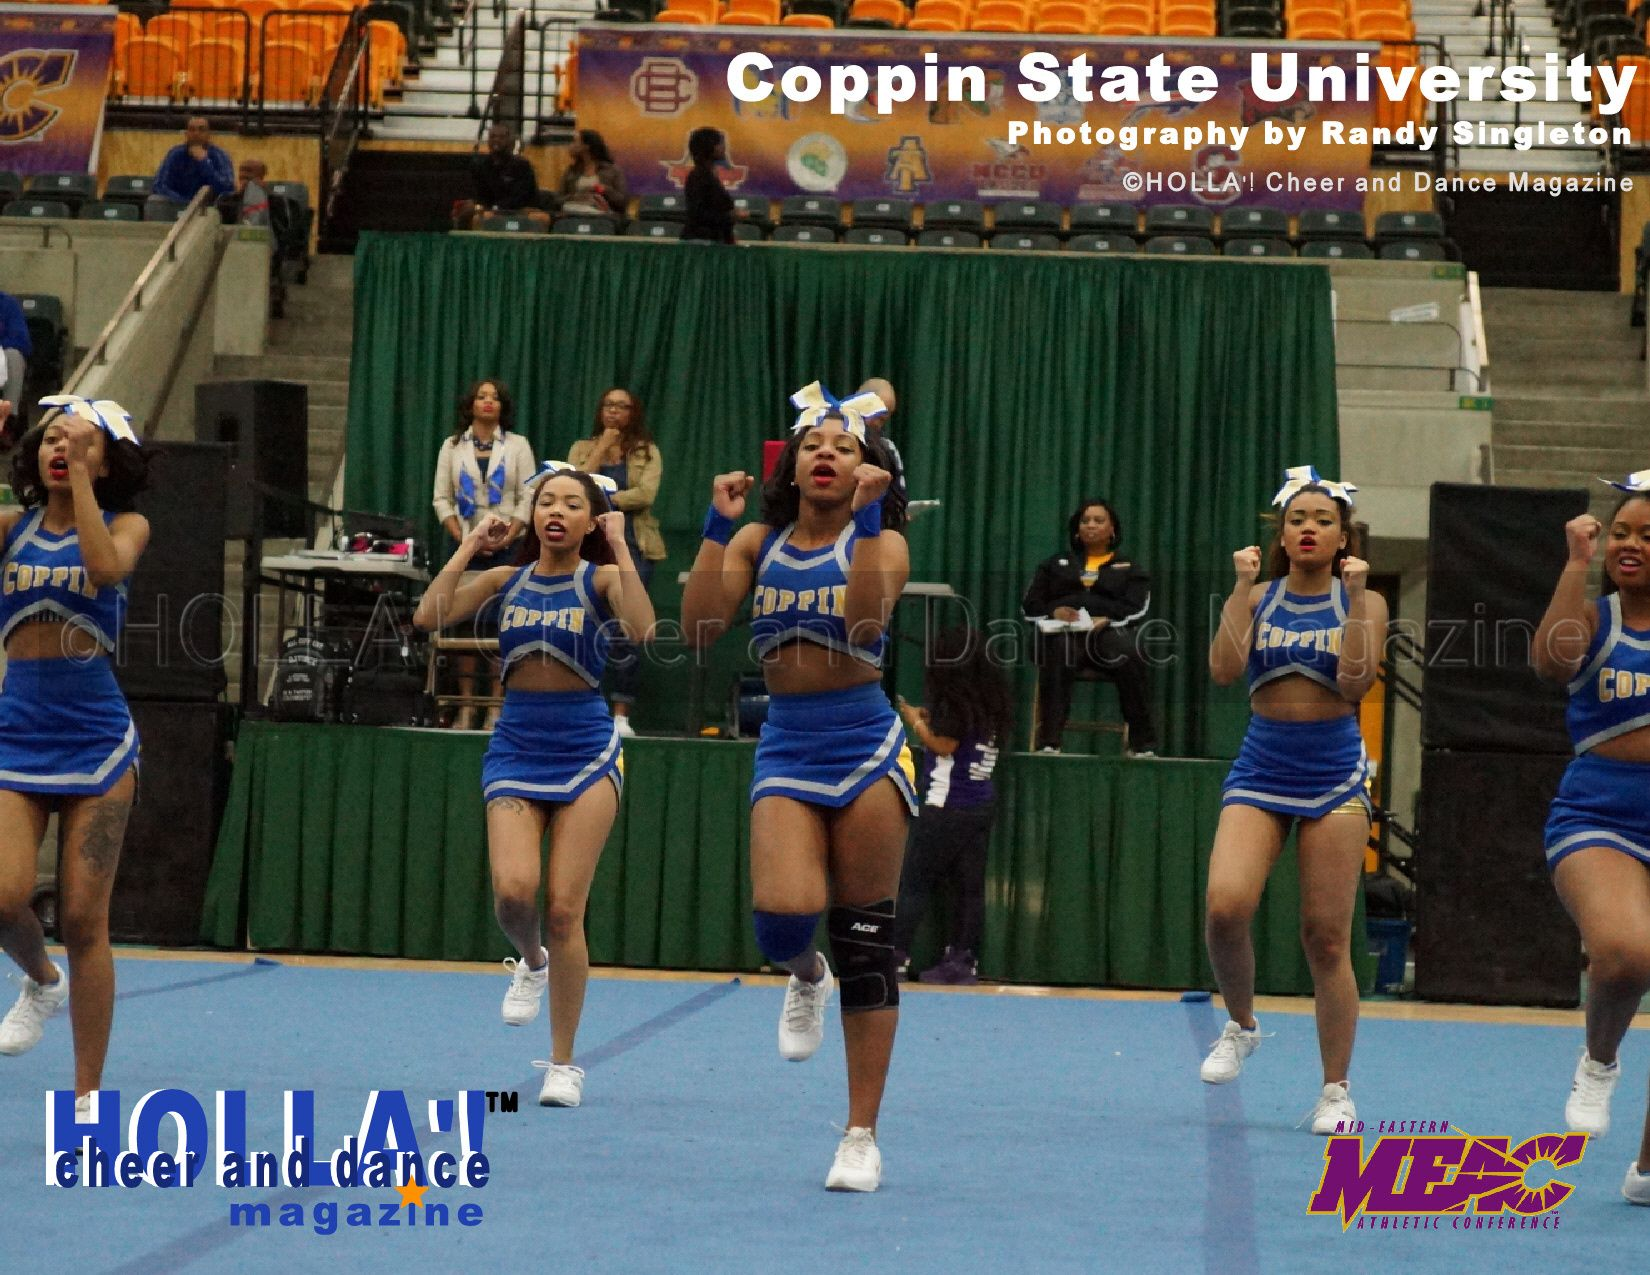 Coppin State University See More Meac Cheerleading Competition Pictures At Www Hollacheerdancemagazine C Cheerleading Competition Dance Magazine Cheerleading